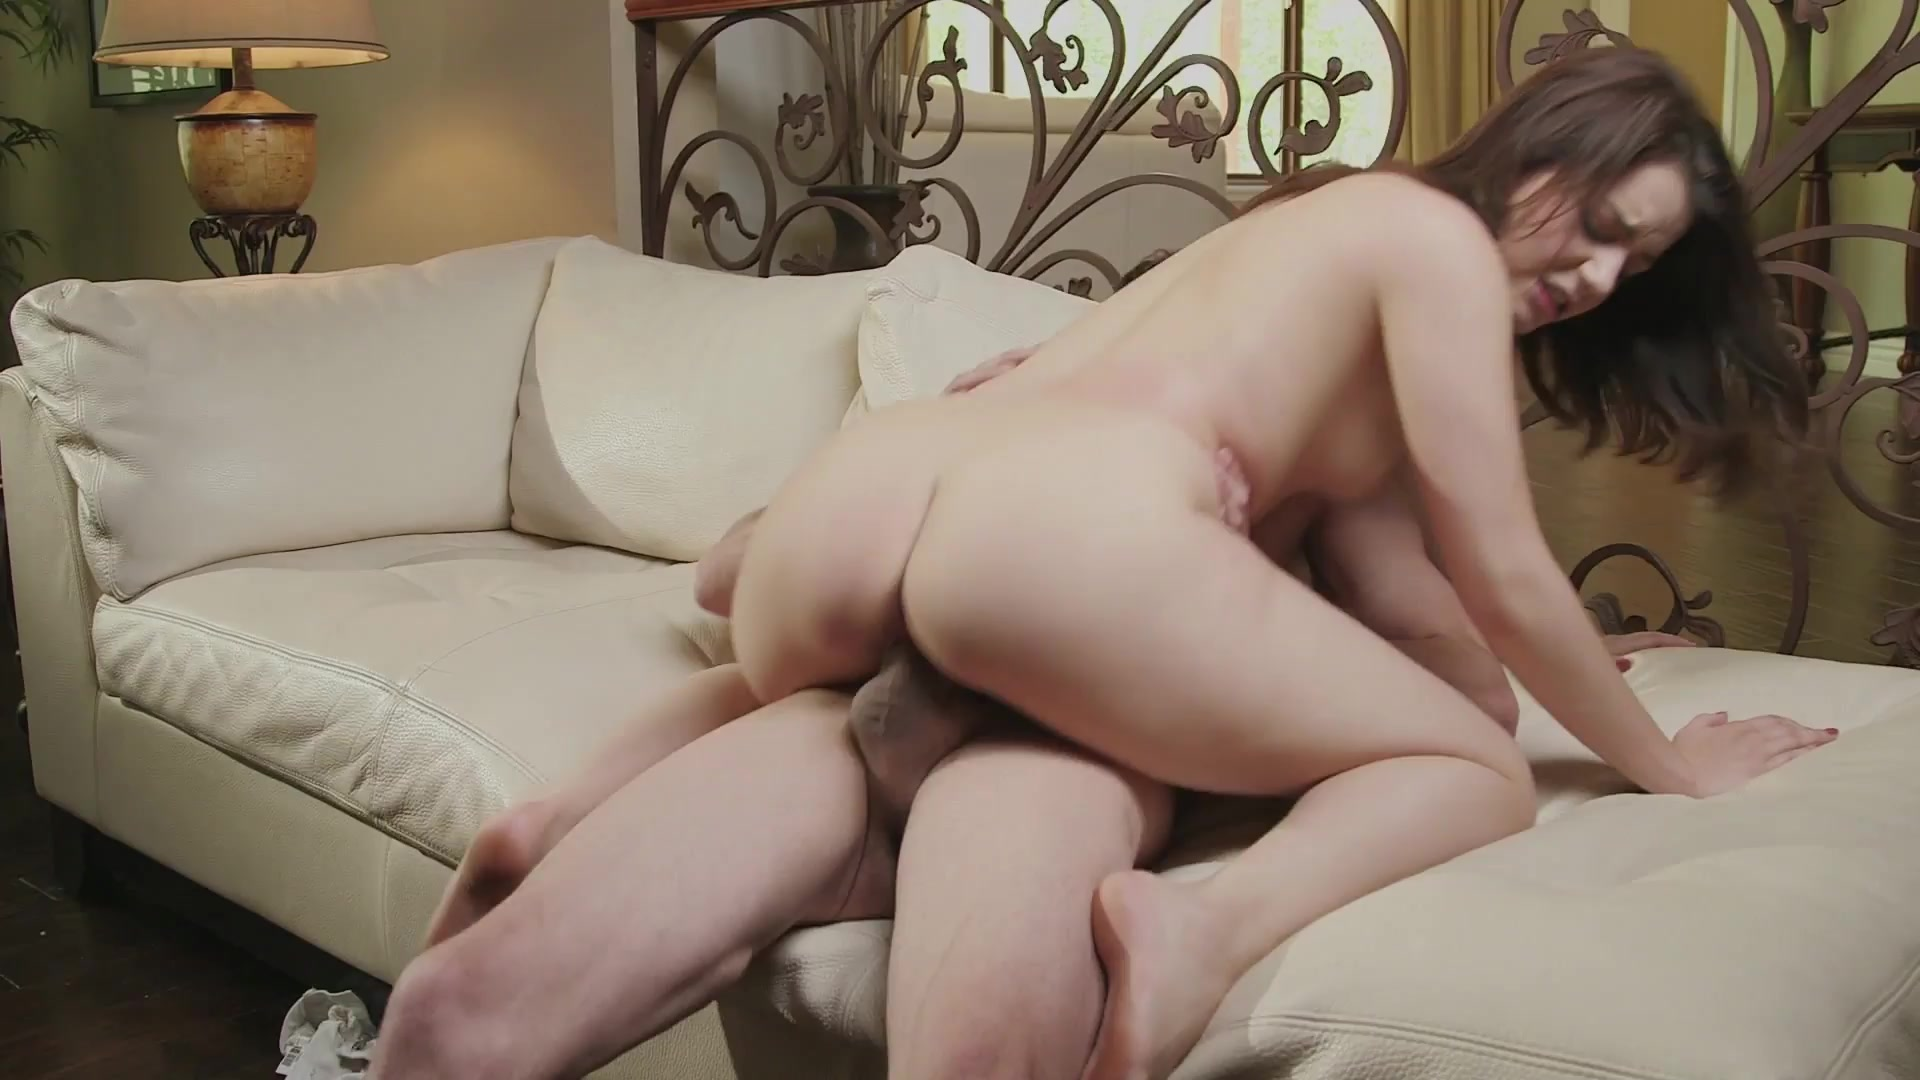 sex with my younger sister streaming or download video on demand